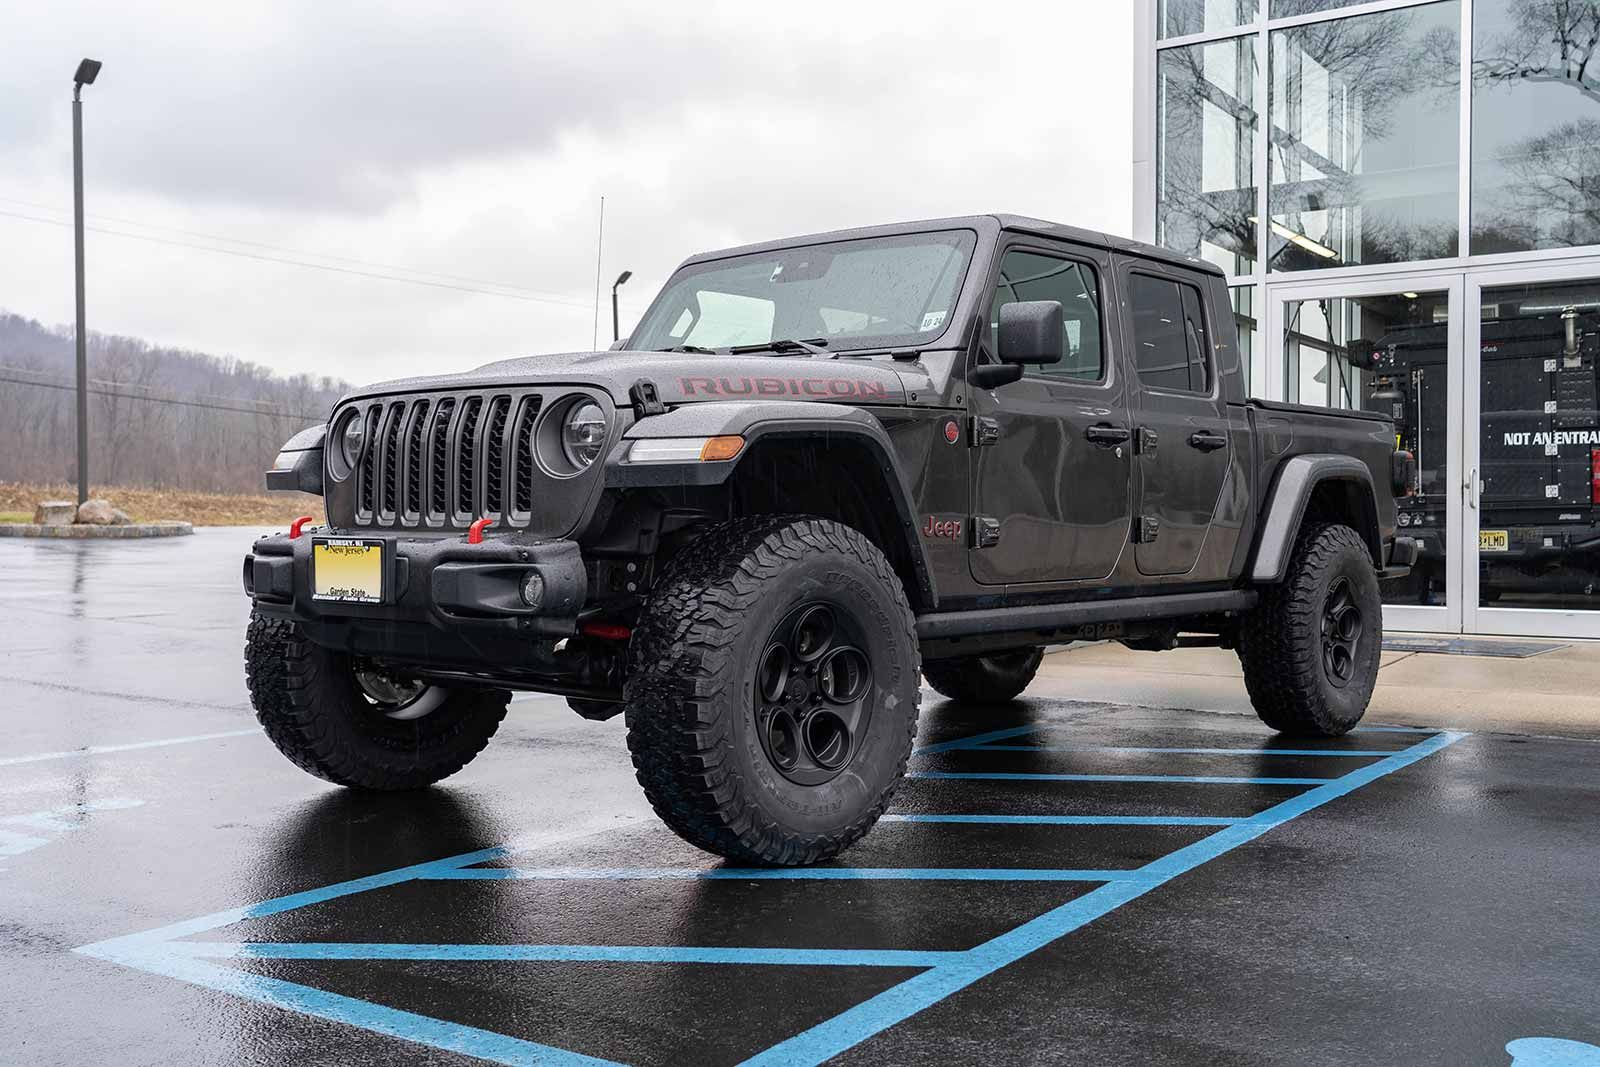 Online Garage 2020 Jeep Gladiator In 2020 Jeep Gladiator Jeep Wrangler Lifted Jeep